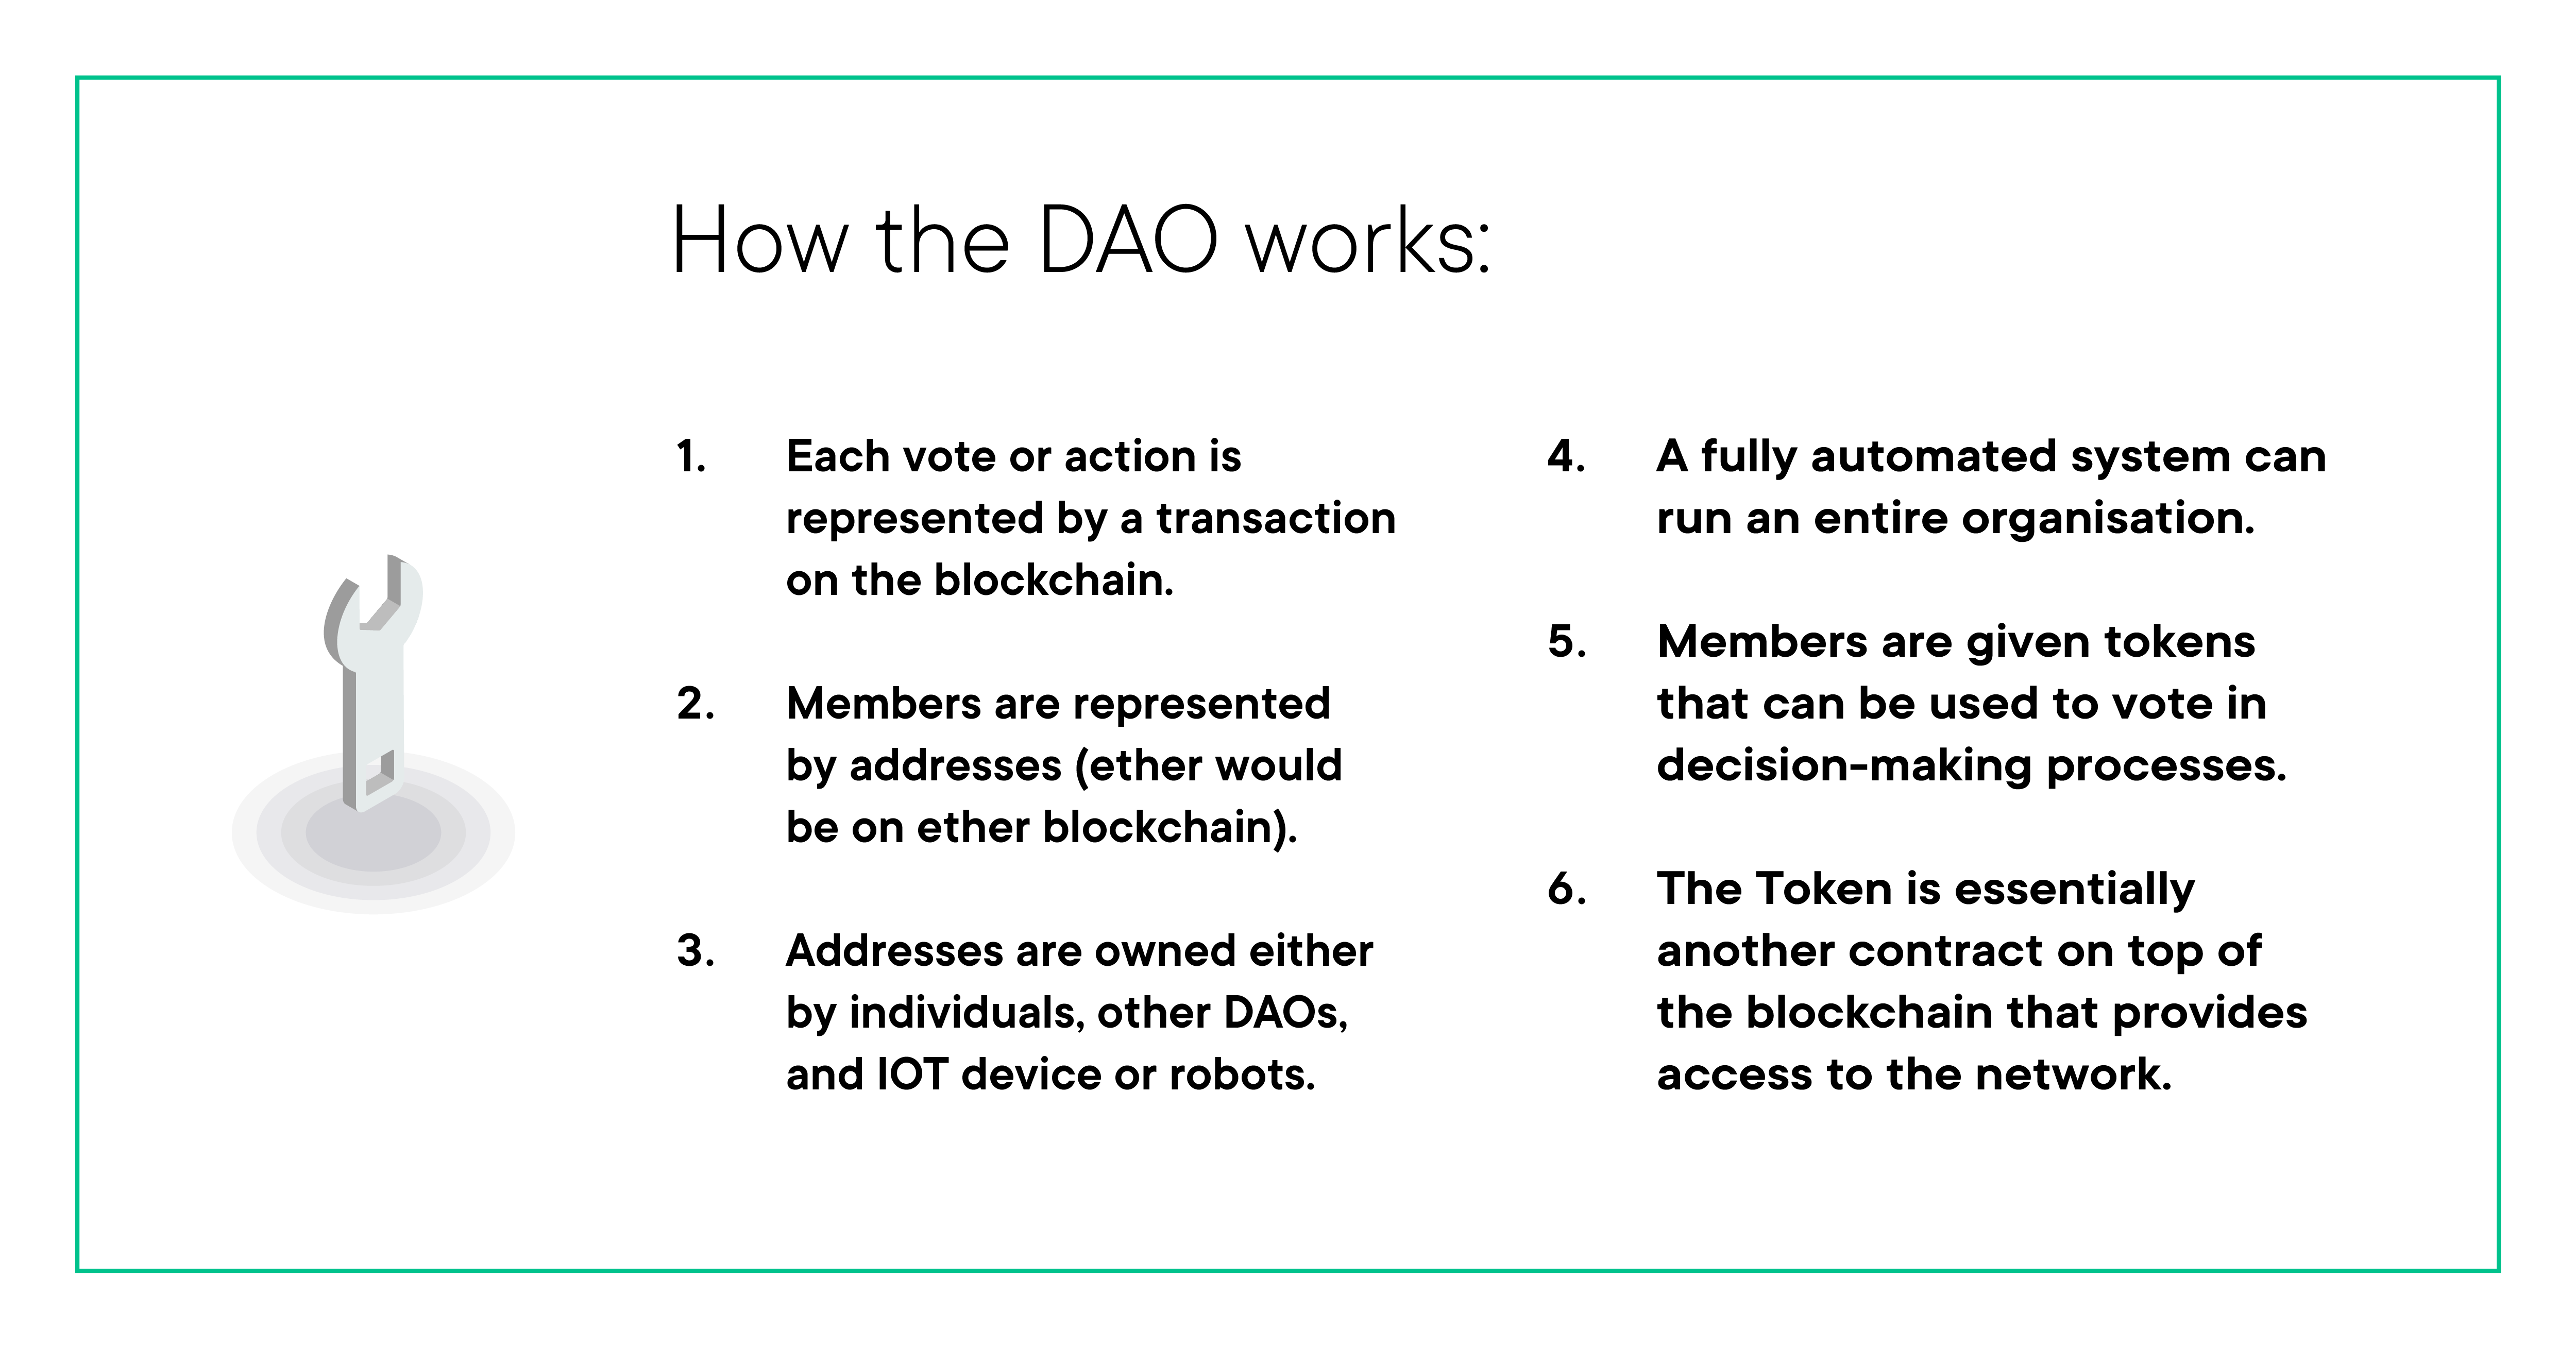 How The DAO works